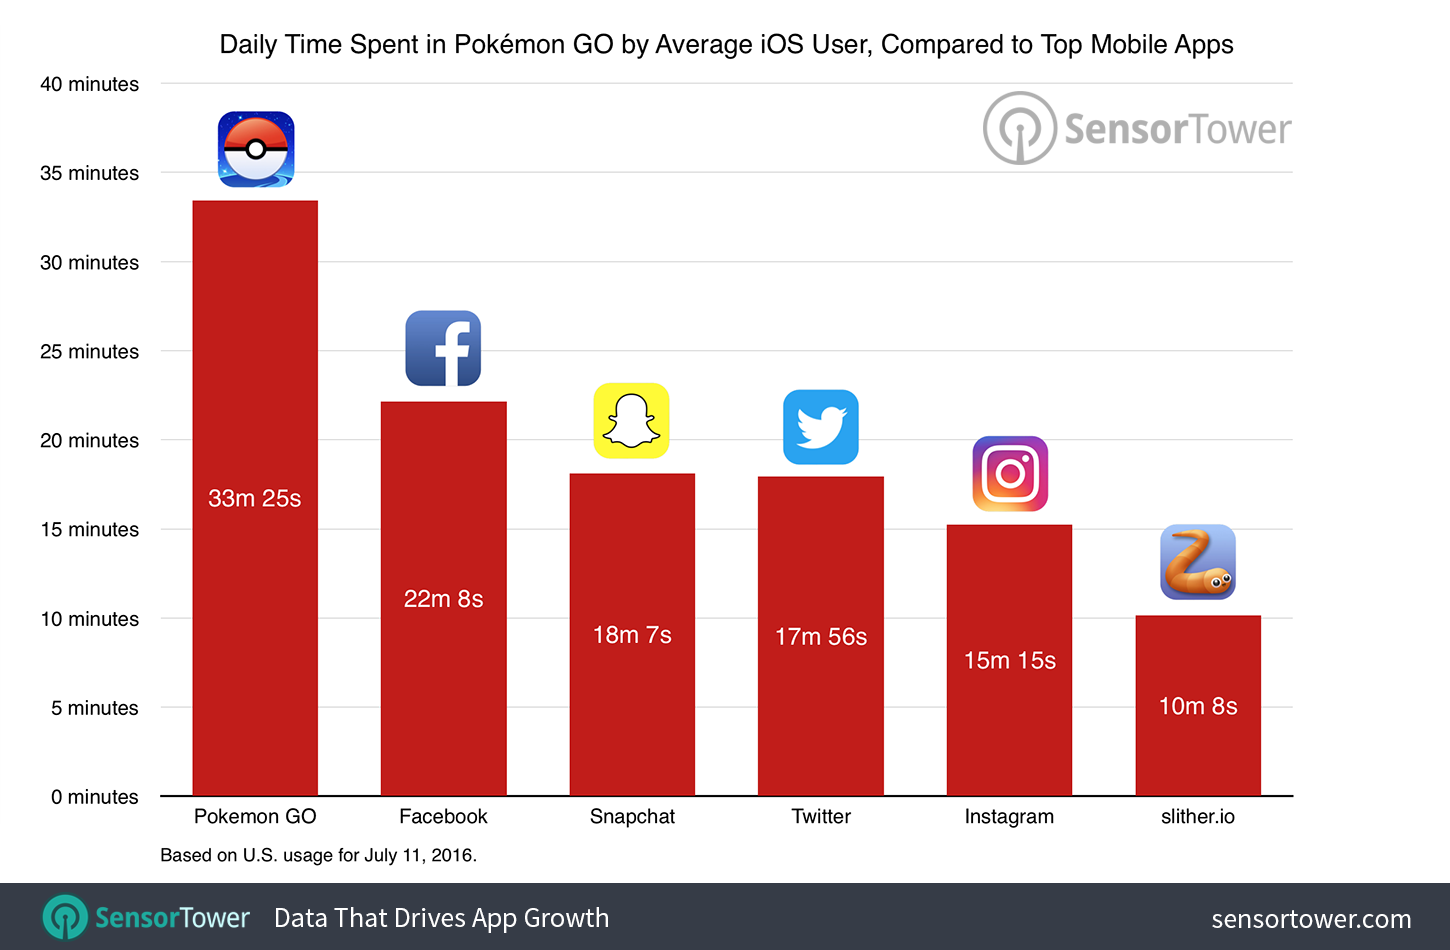 Daily Time Spent in Pokémon GO by Average iOS User, Compared to Top Mobile Apps